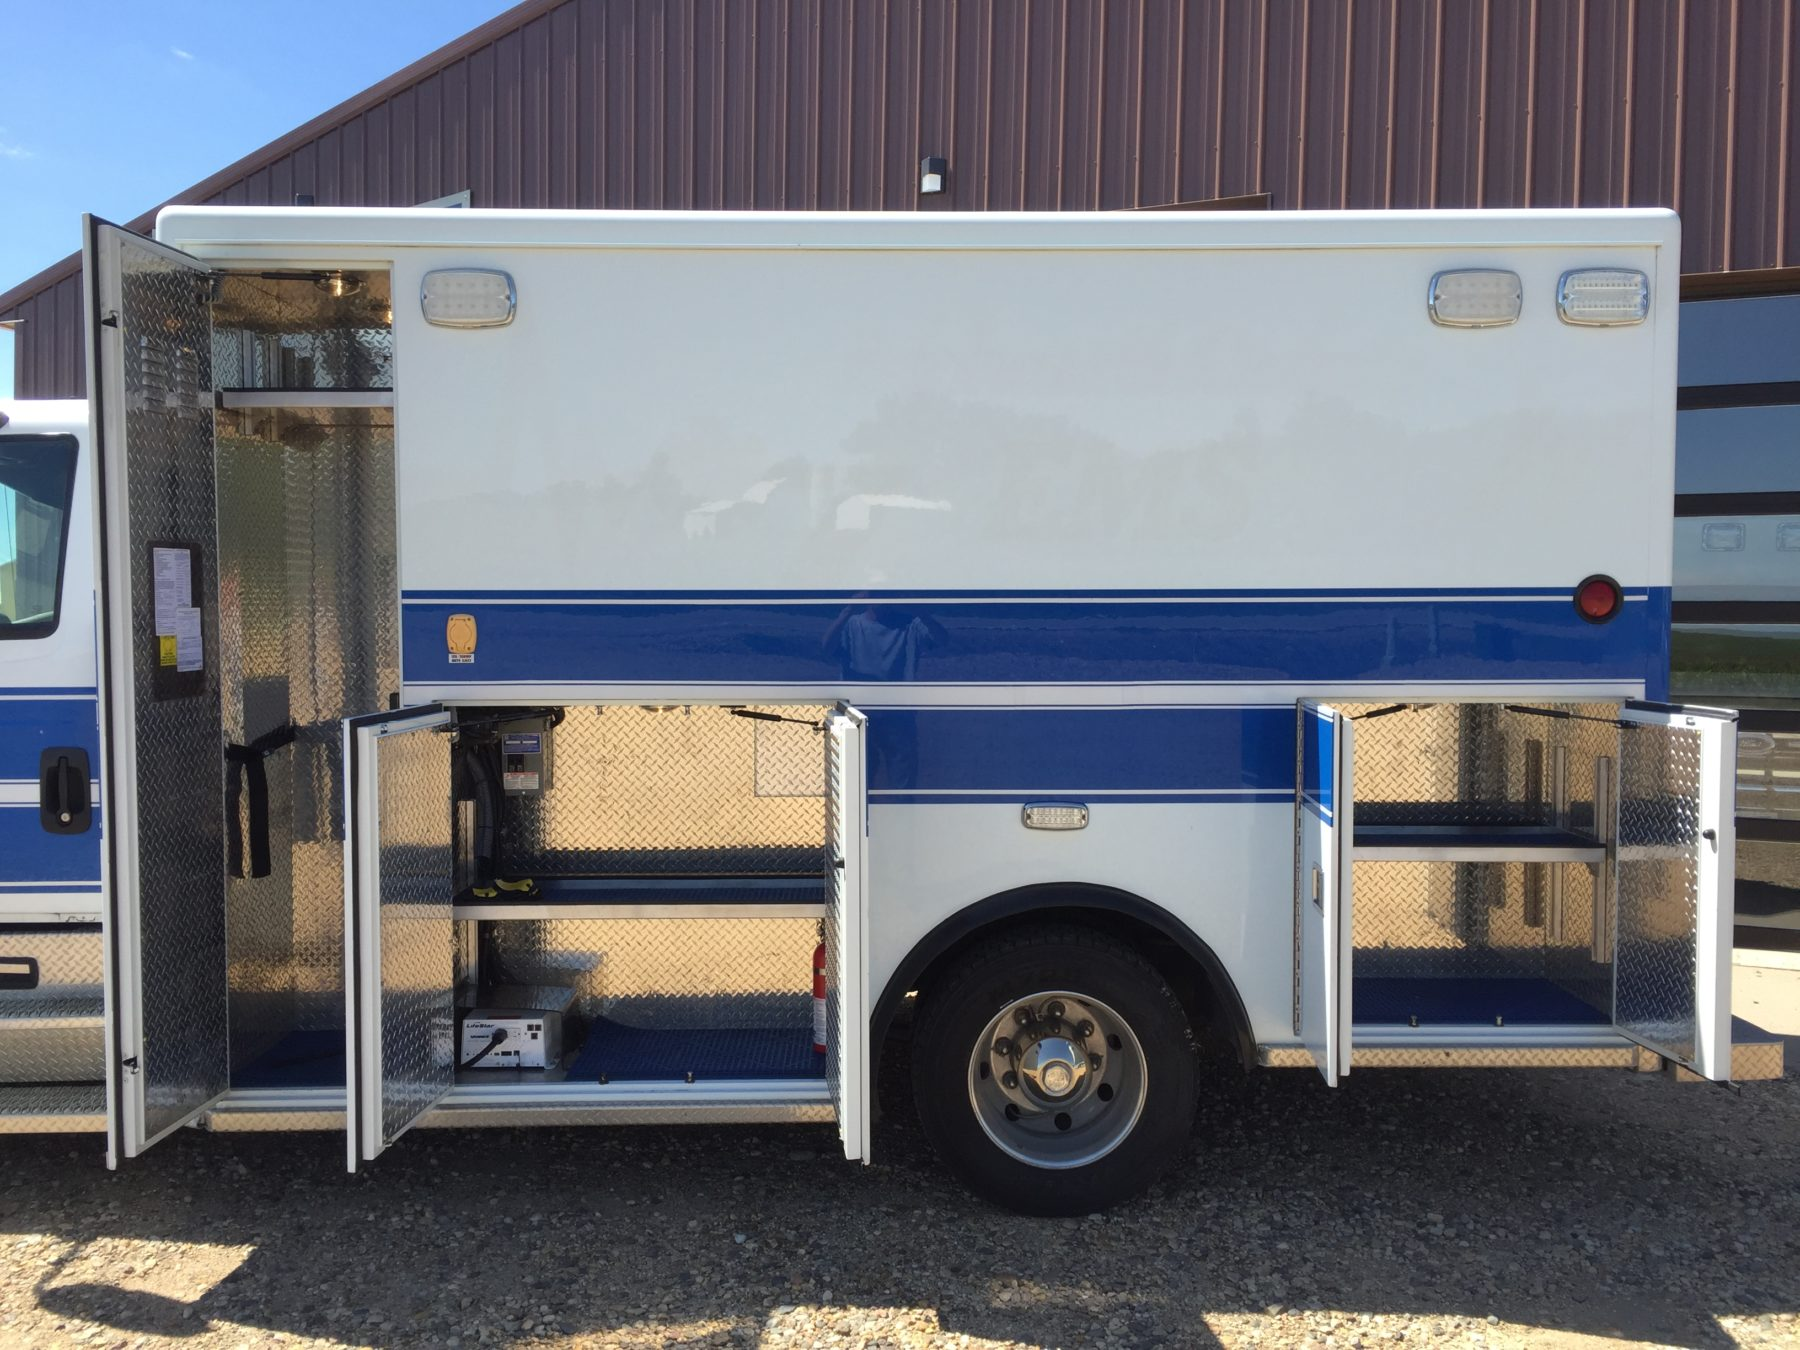 2011 International 4300 Heavy Duty Ambulance For Sale – Picture 7